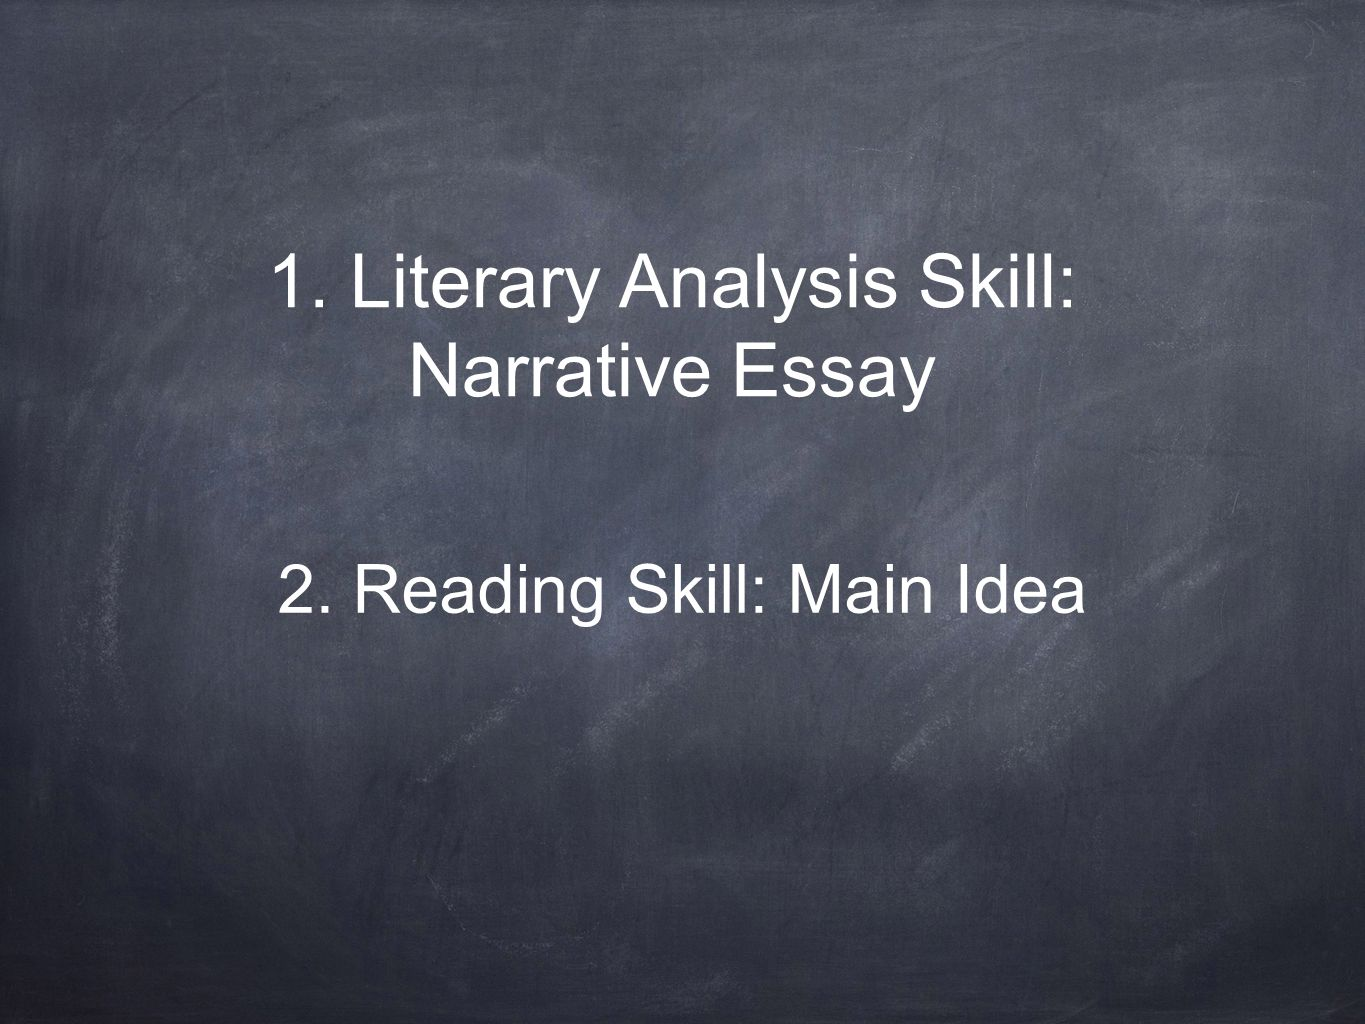 essay about reading skills